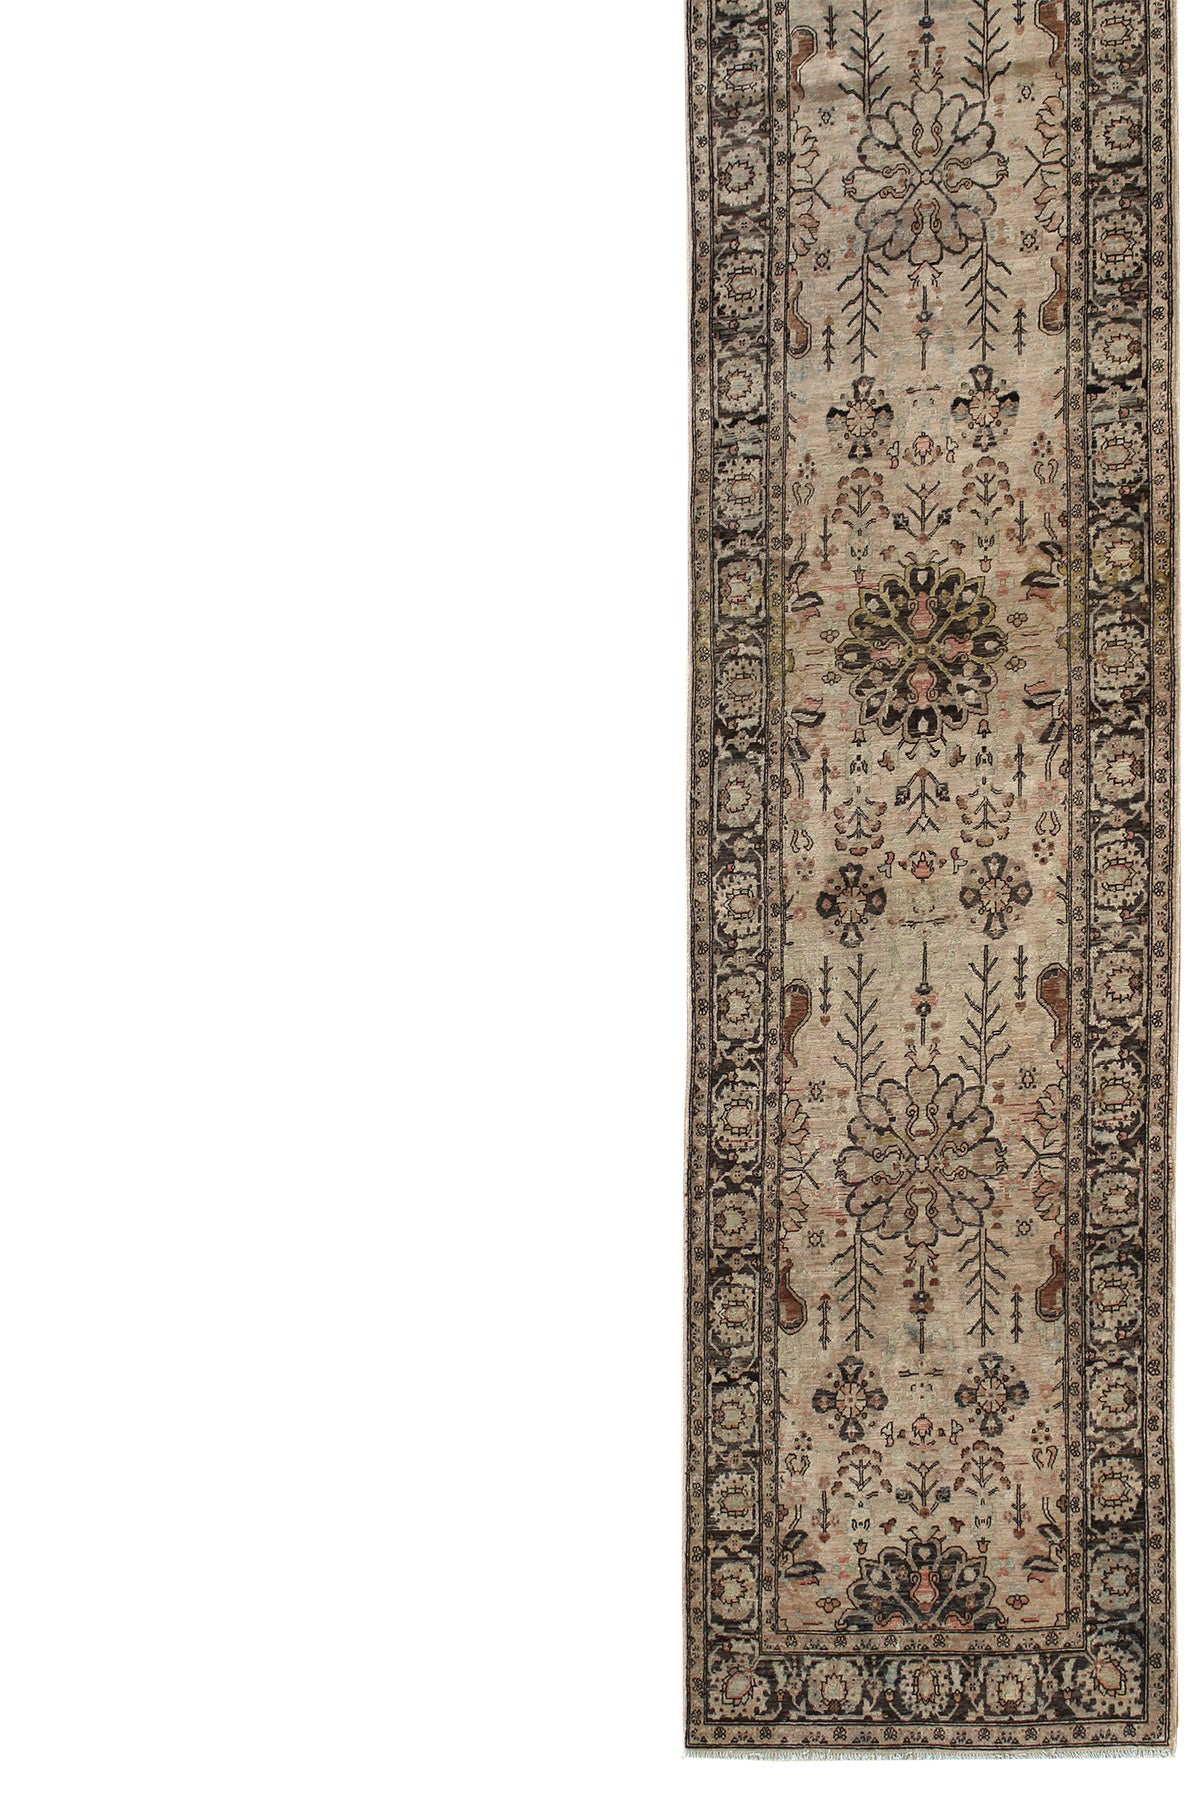 Ferahan Handwoven Traditional Rug